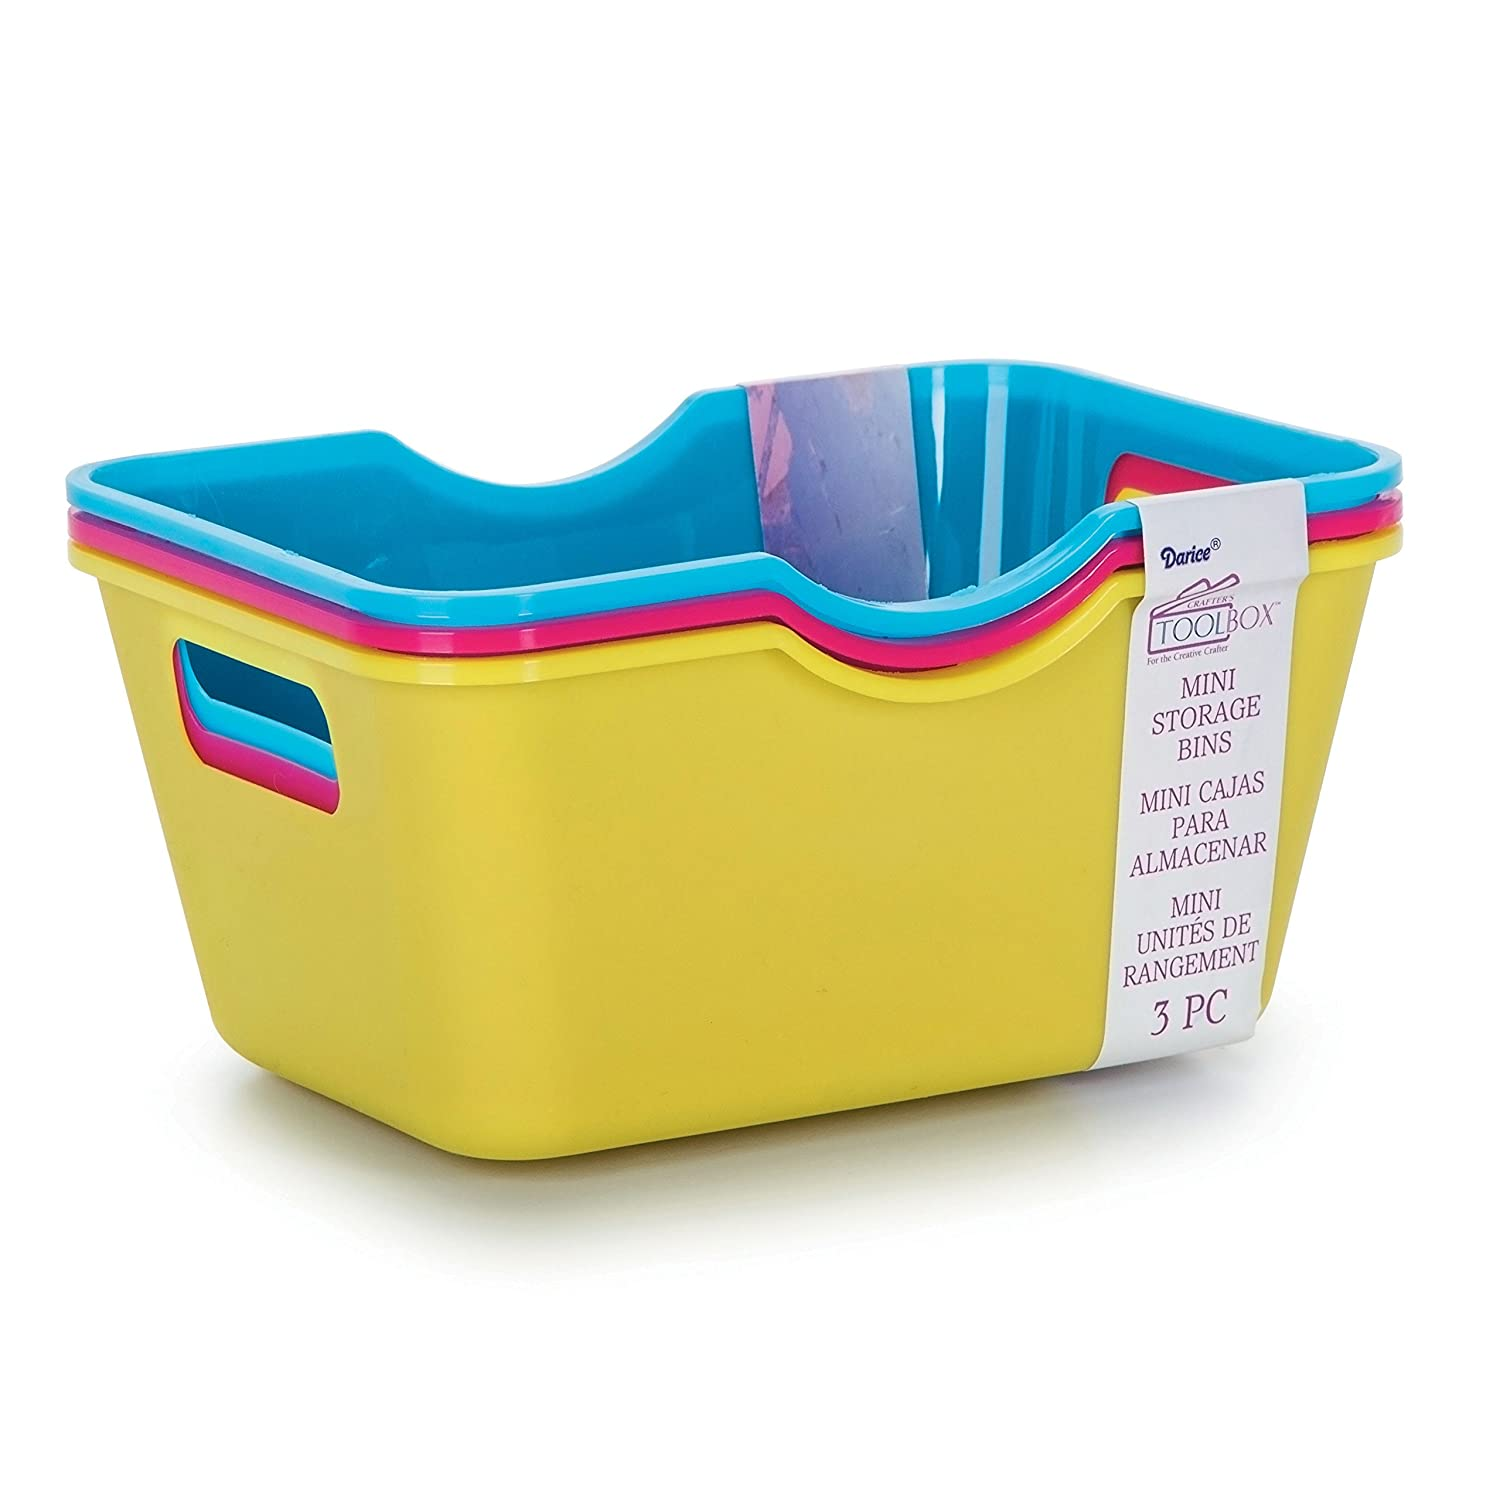 Amazon.com: Darice Crafters Toolbox Mini Colorful Storage Bins - 4 x 2.75 inches - 3 pieces